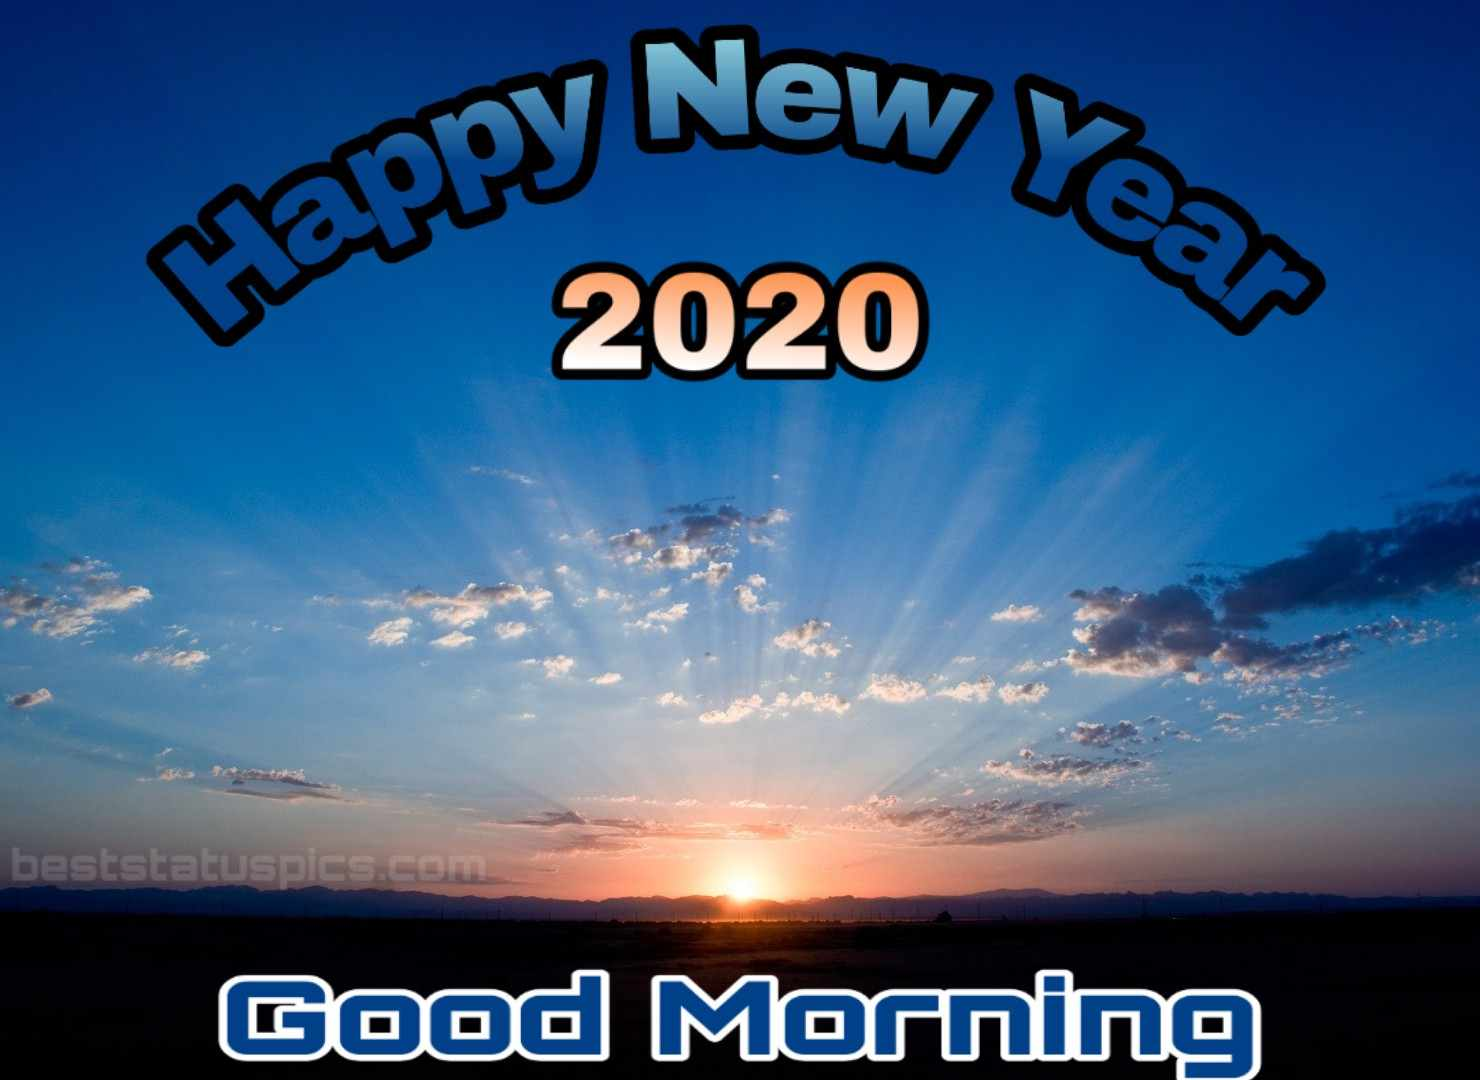 Good morning happy new year 2020 for friends